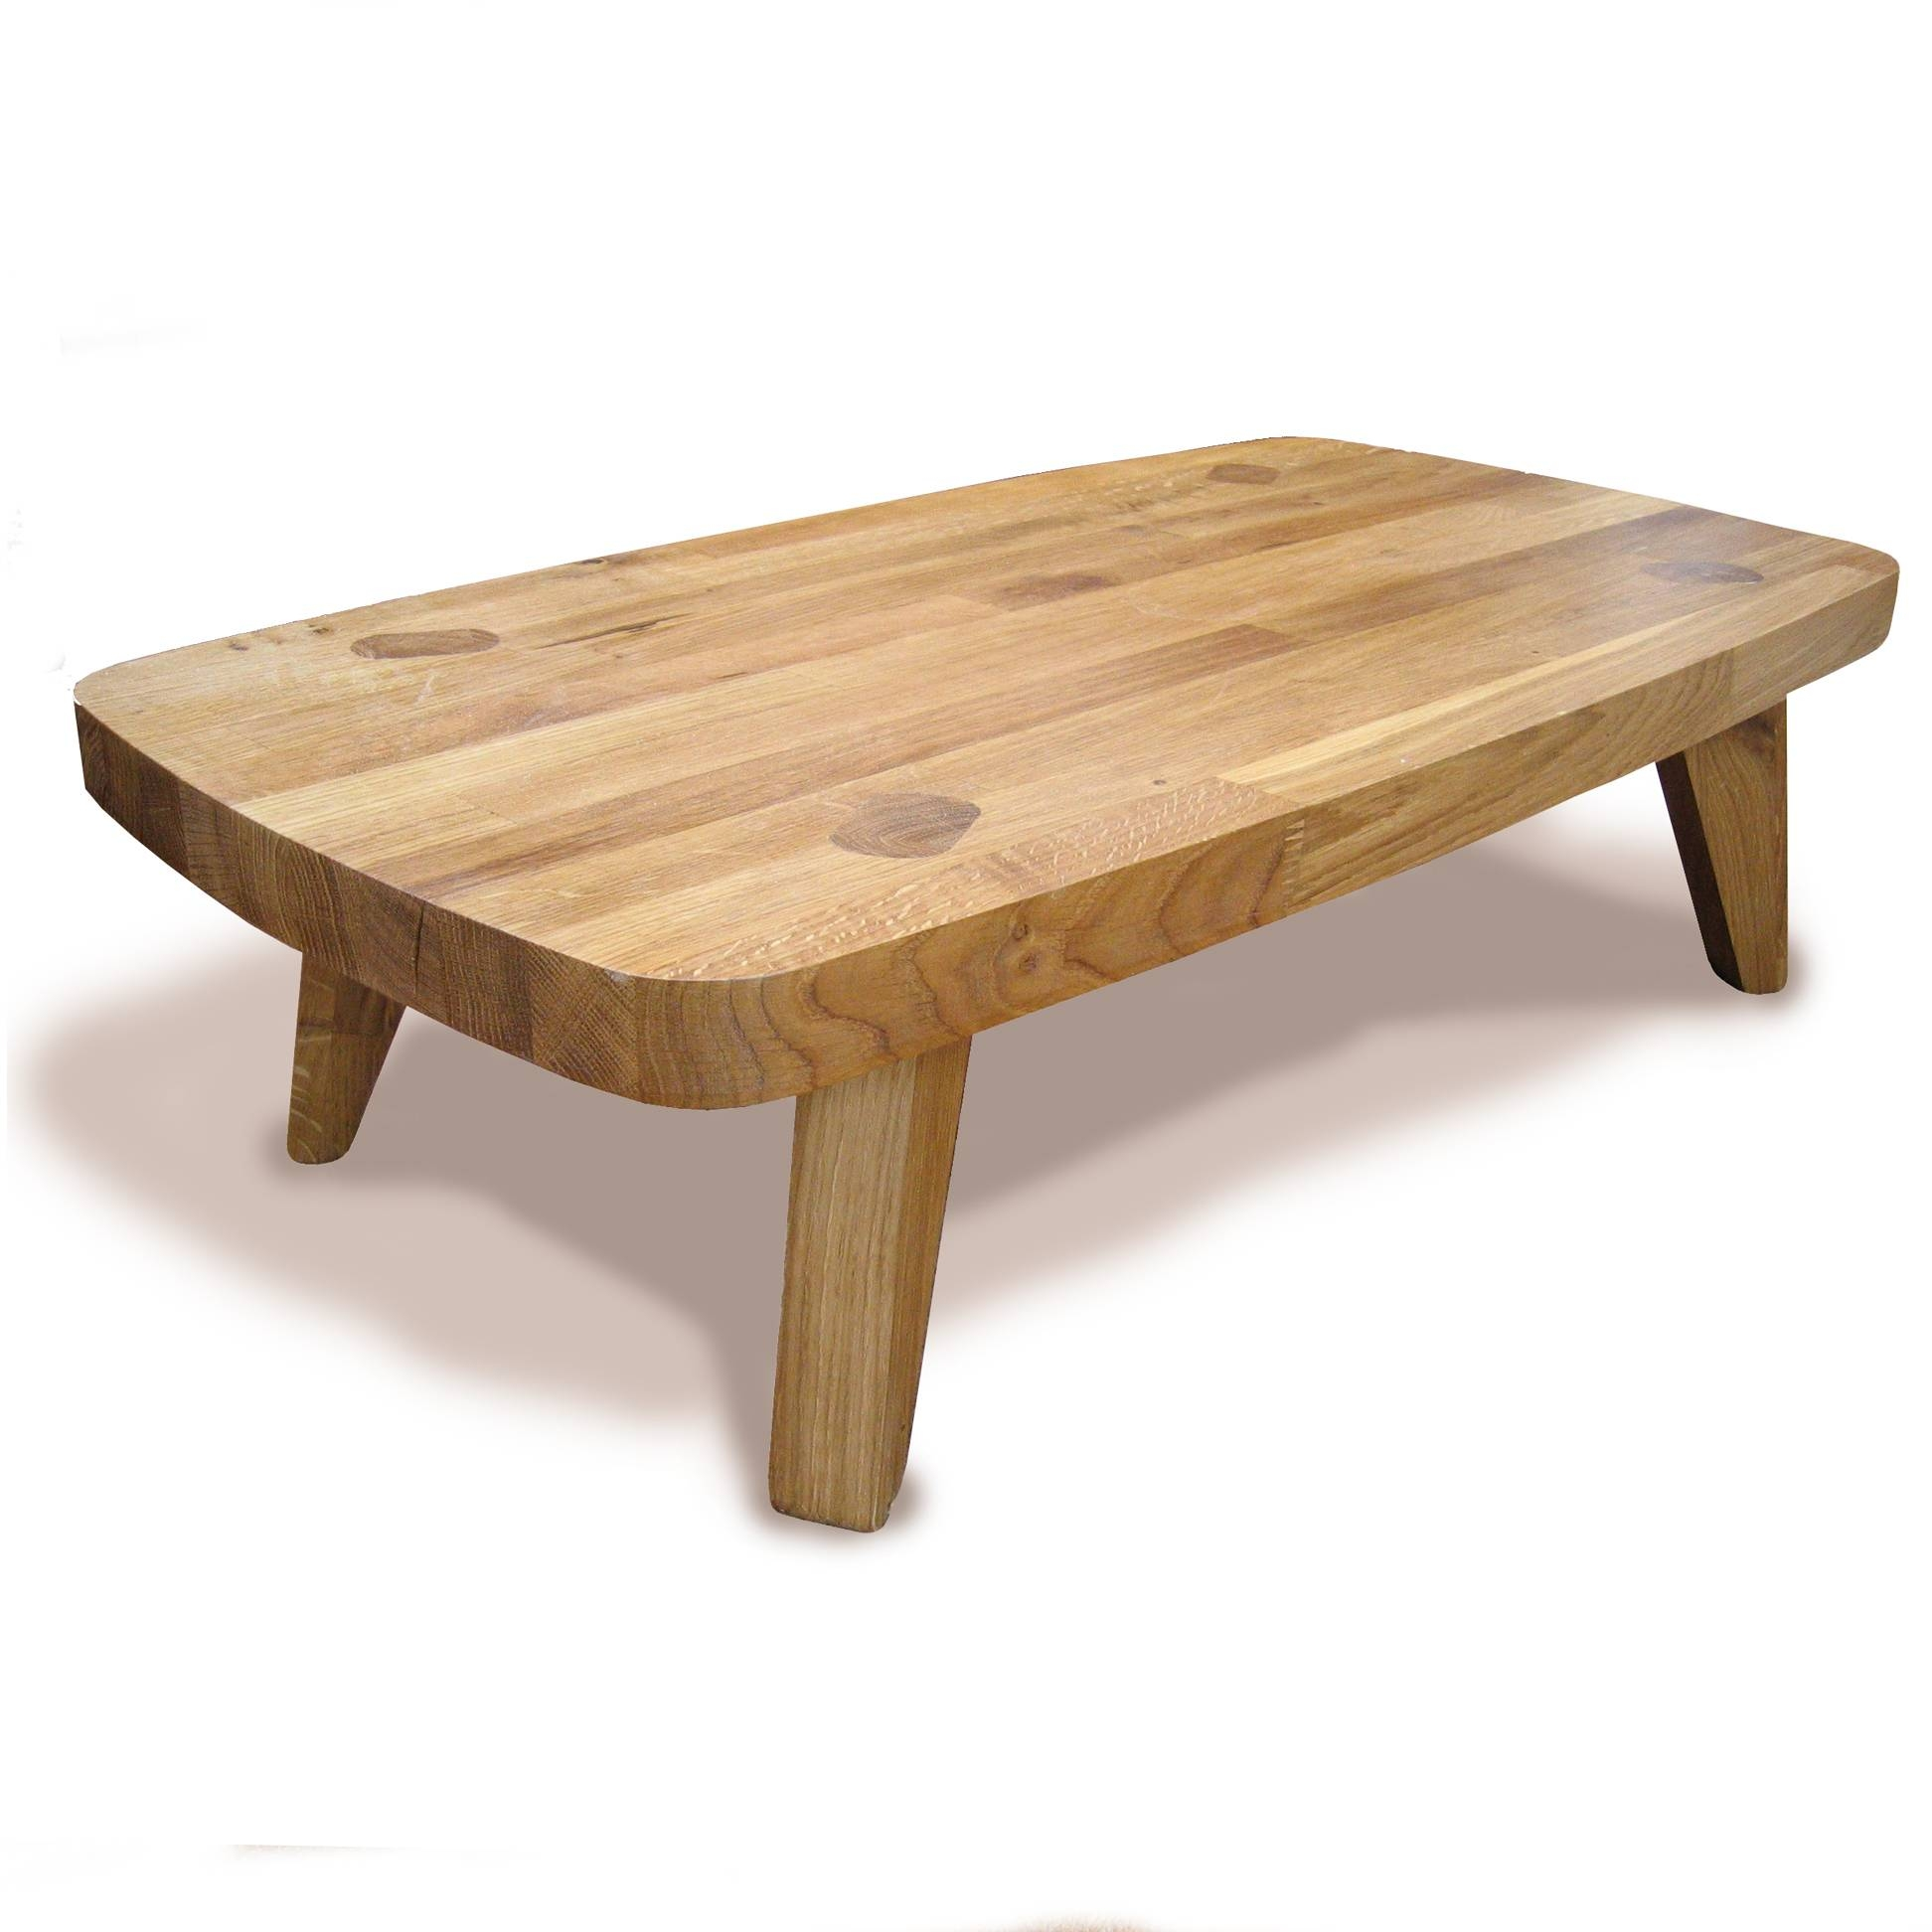 15 Collection of Low Oak Coffee Tables